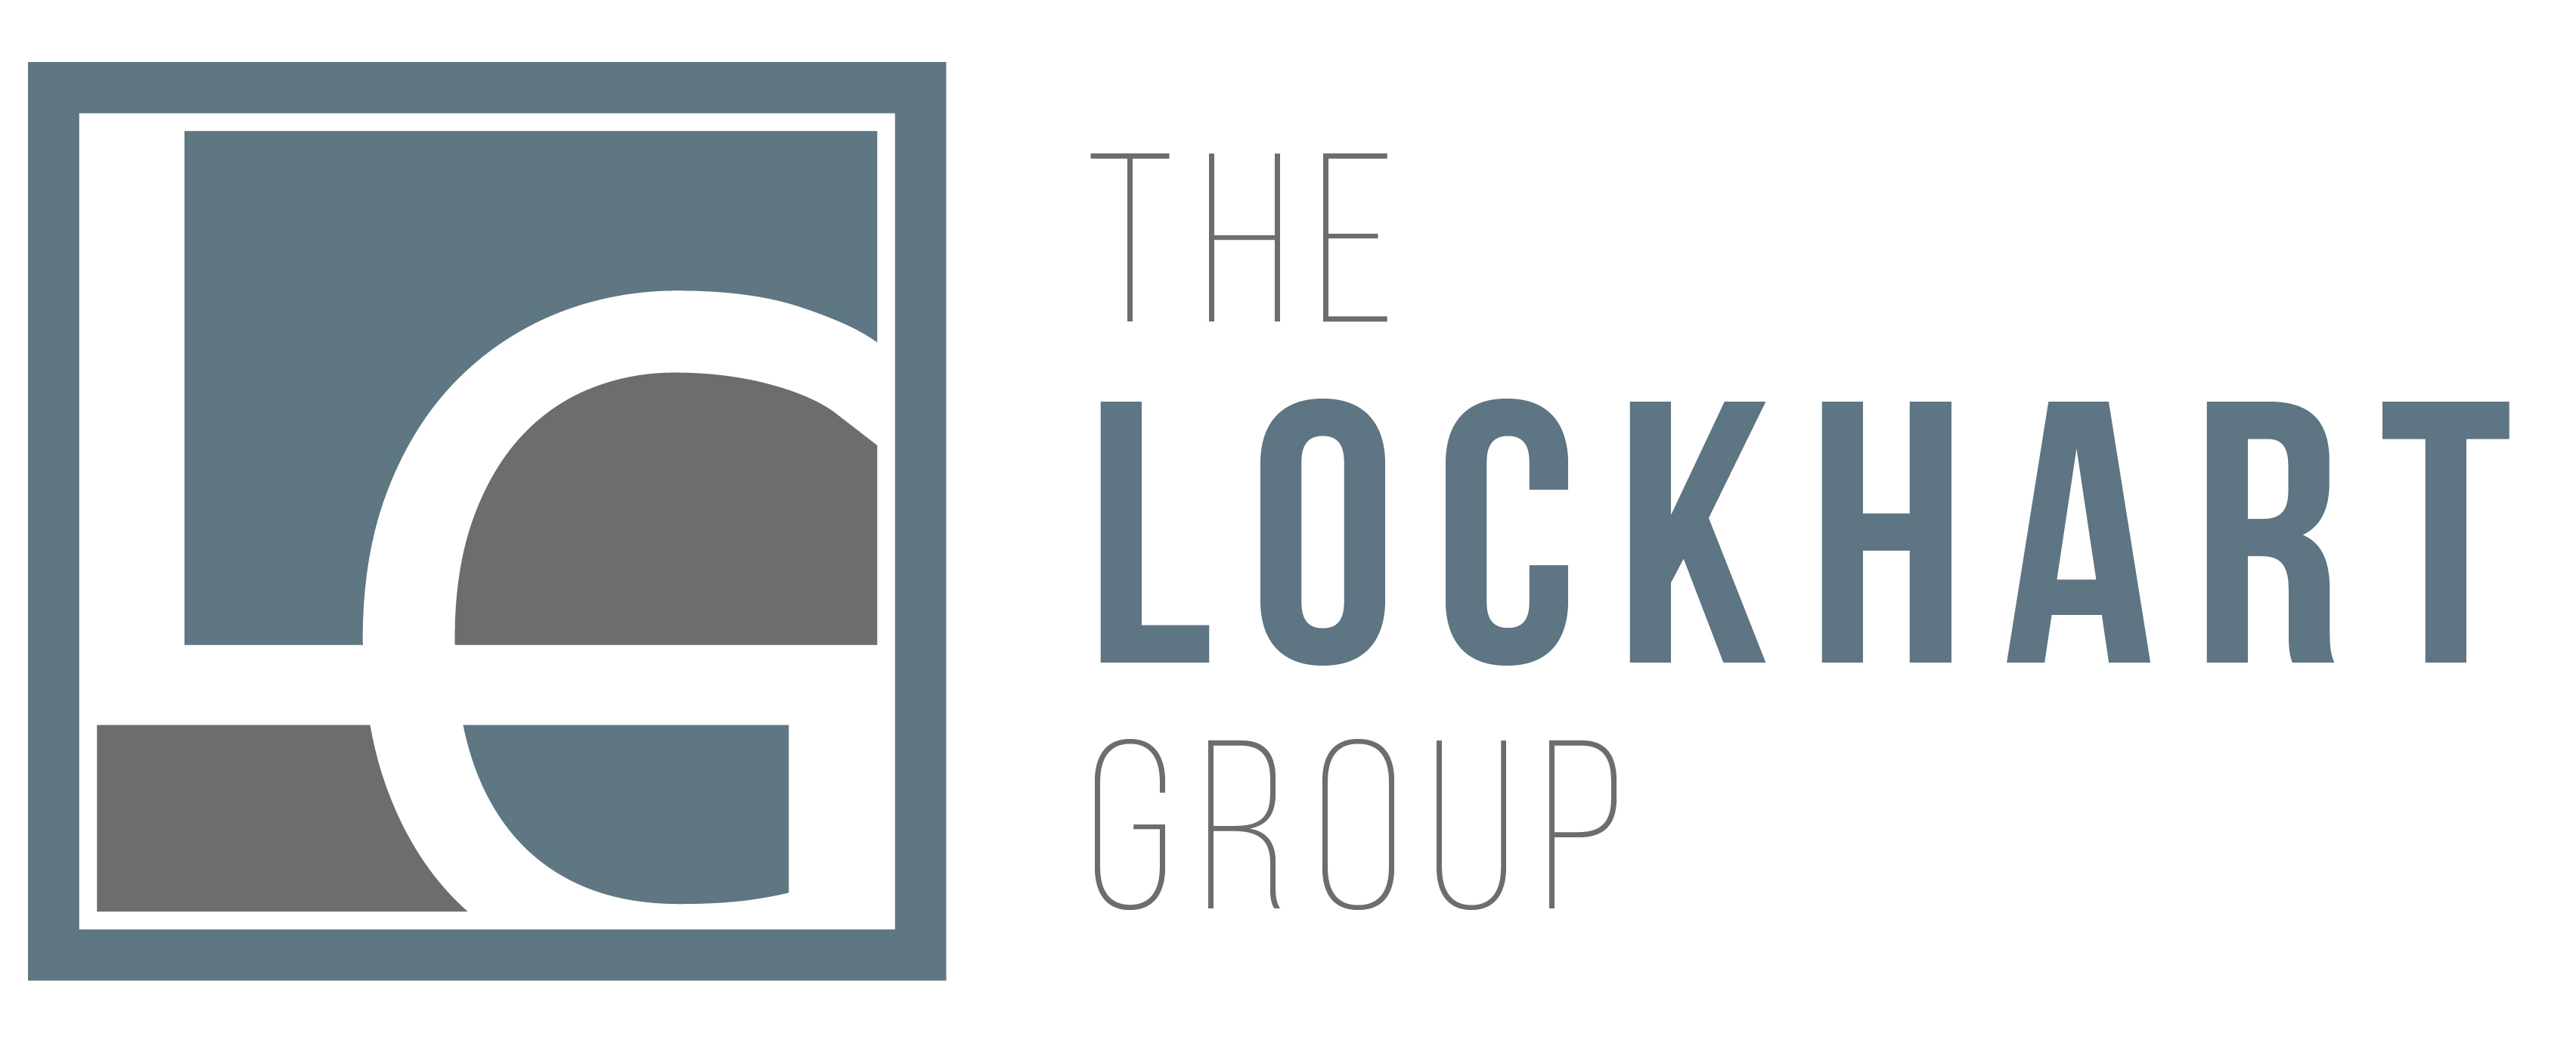 The Lockhart Group